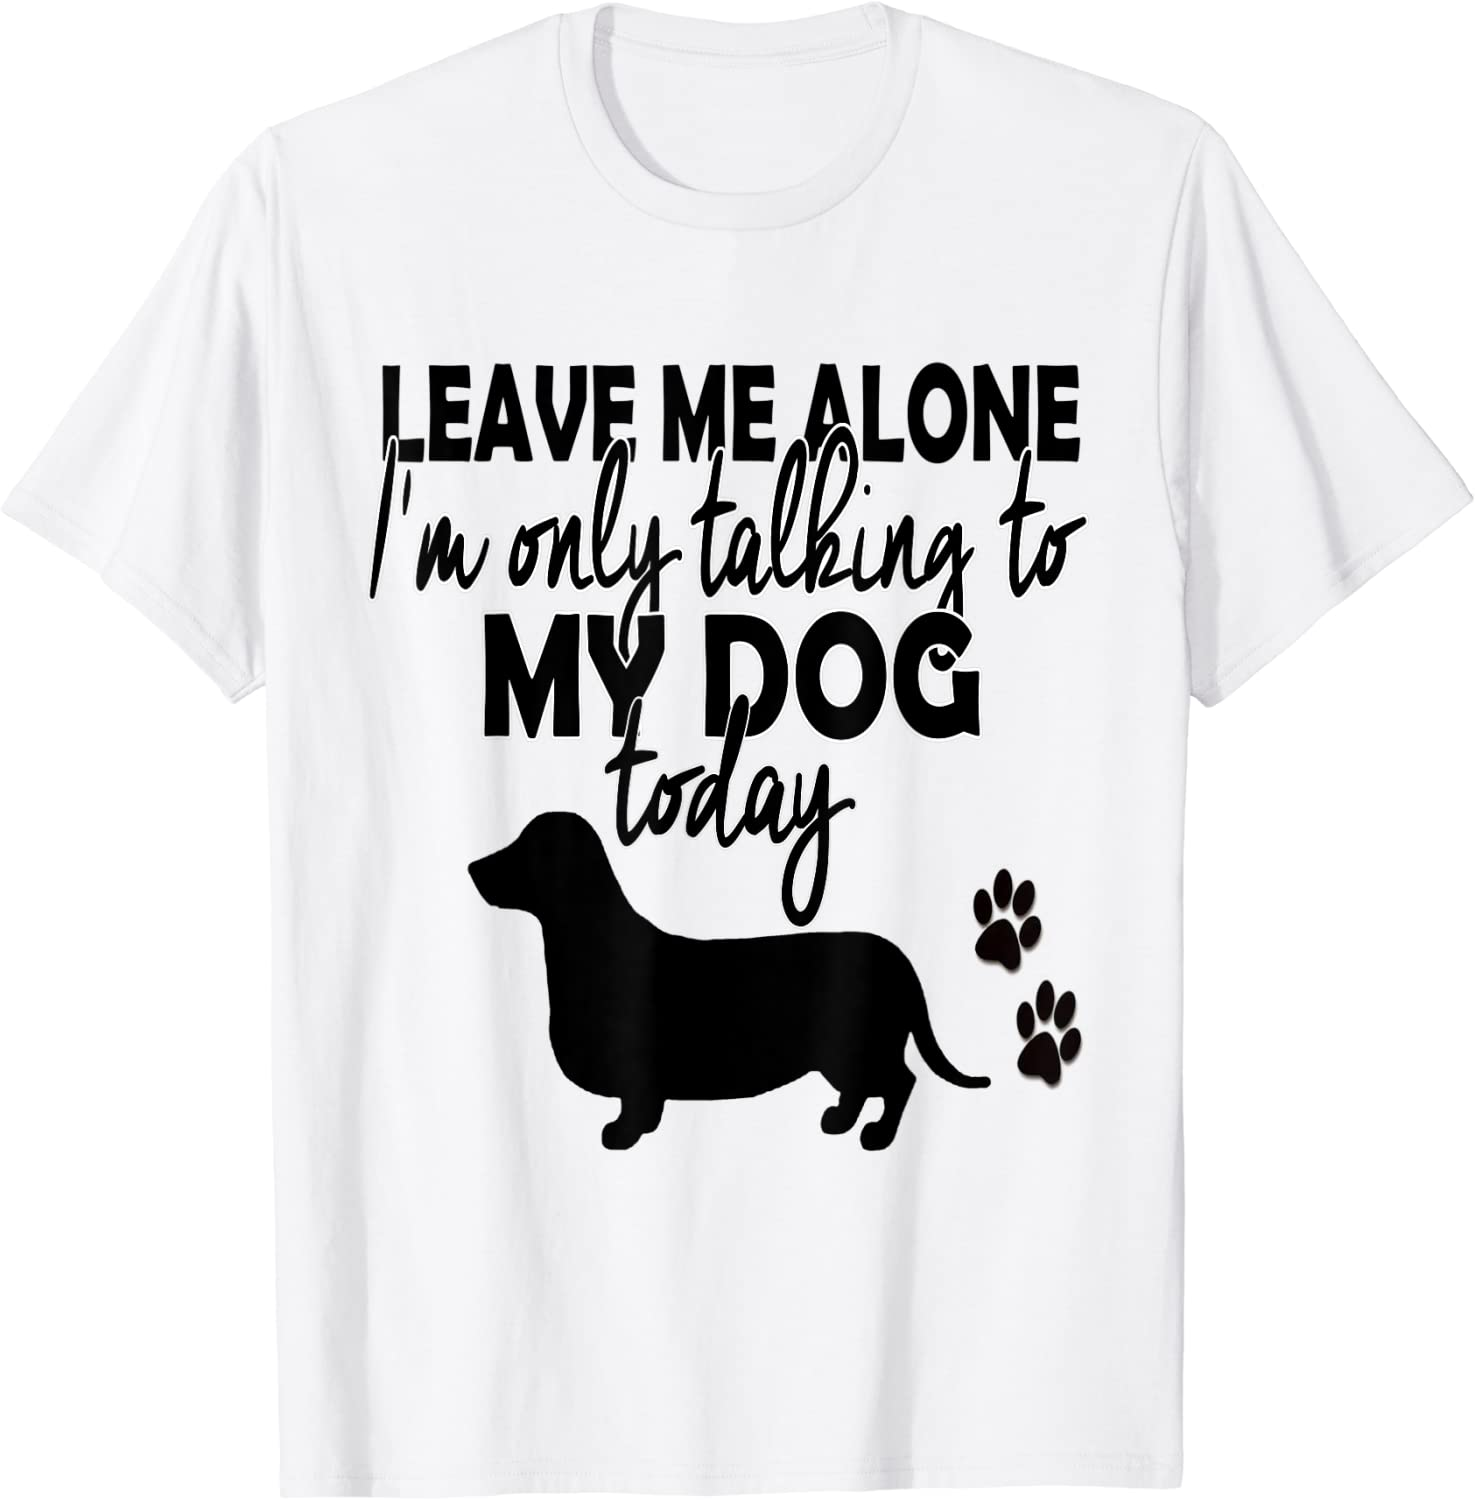 Leave Me Alone I/'m Only Speaking To My Dog Today T-Shirt Funny Animal Top